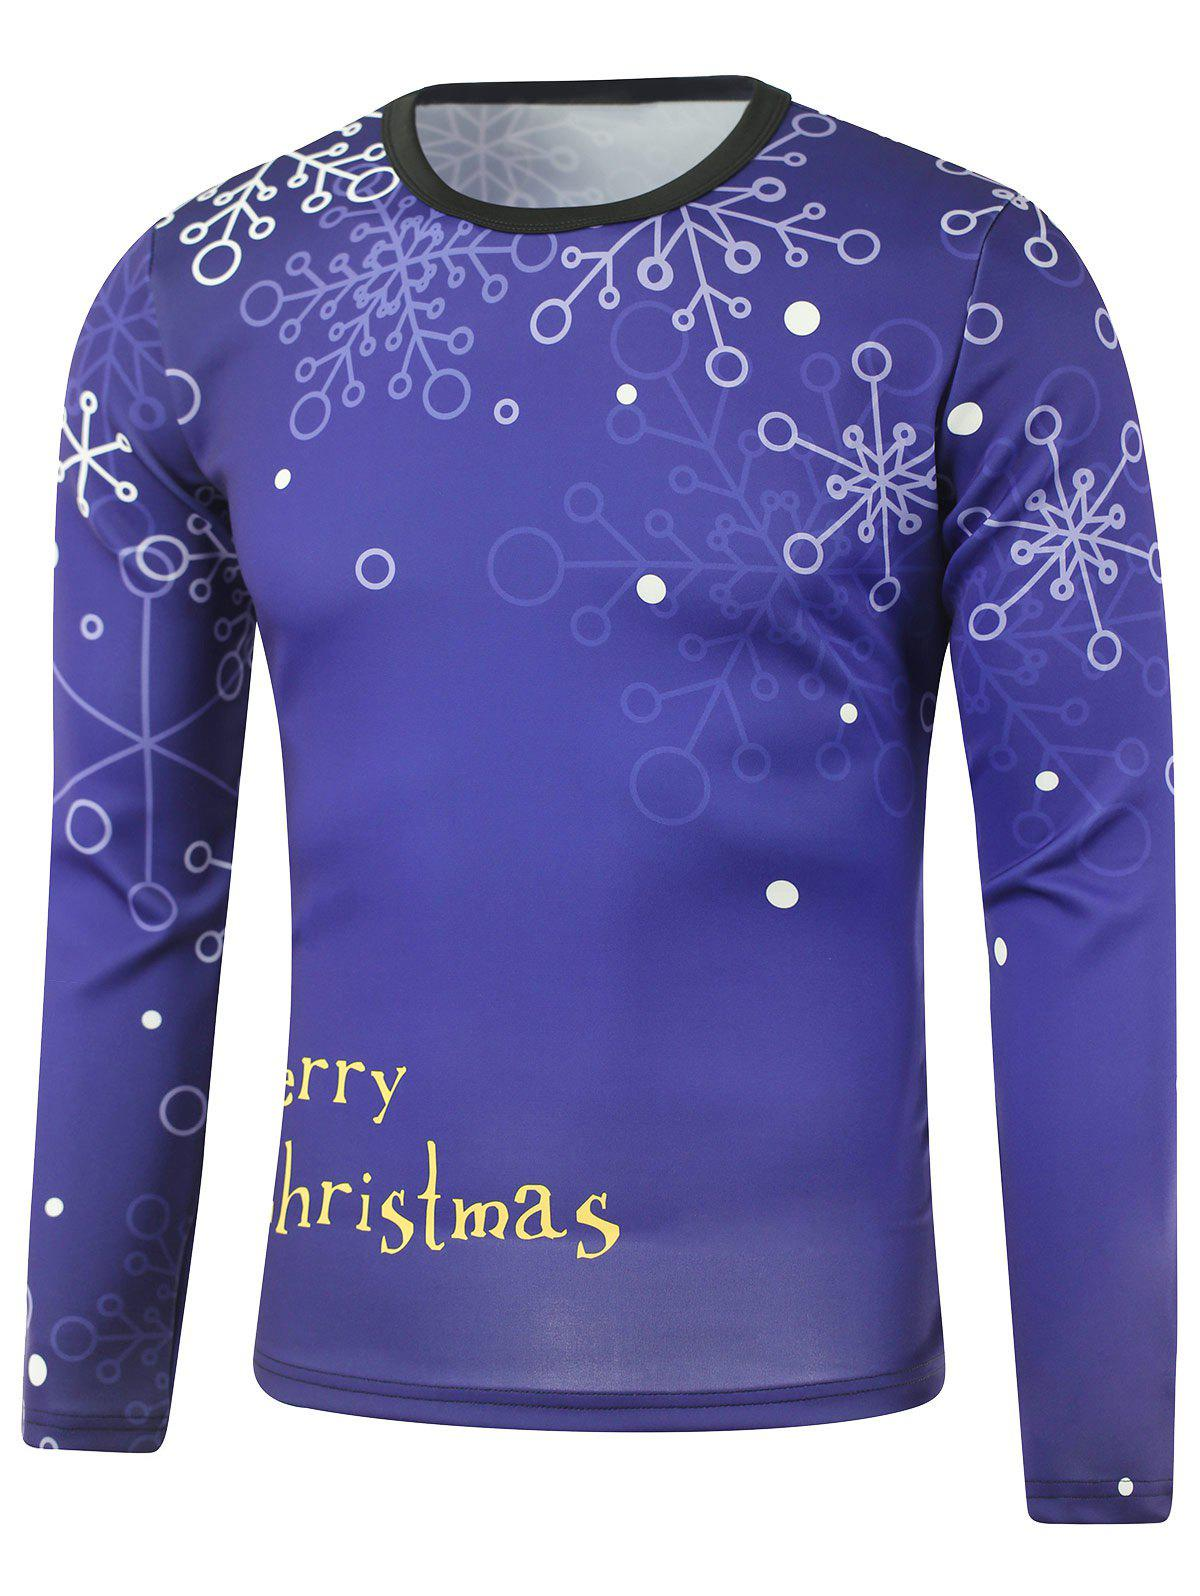 Snowflake Merry Christmas Printed Long Sleeve Sweatshirt - DEEP BLUE M